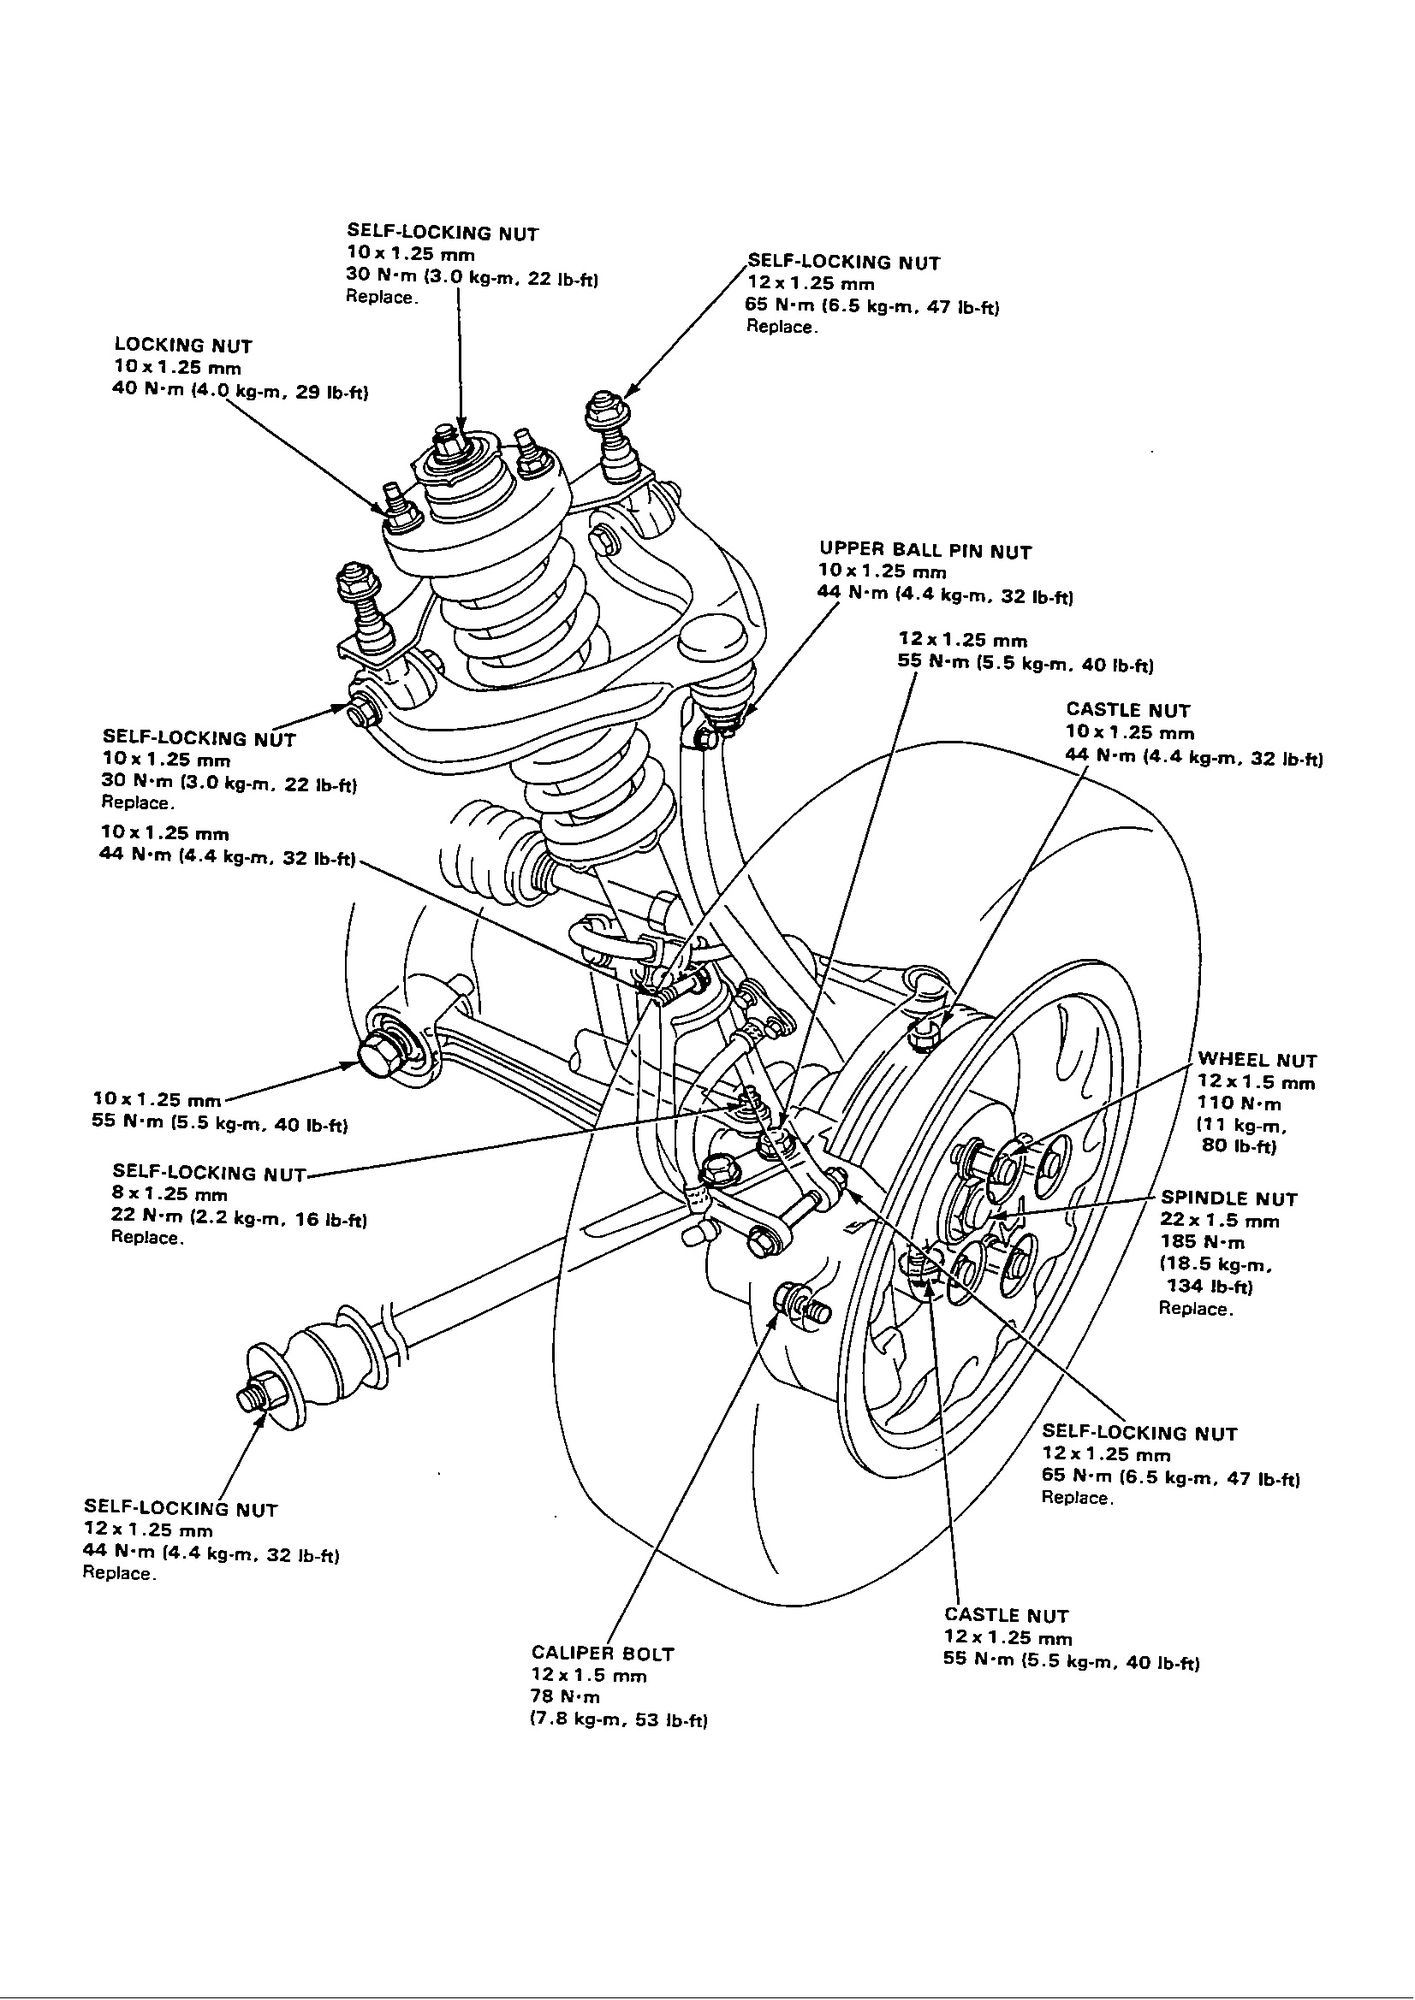 Torque Specs For Radius Rods And Crossmember